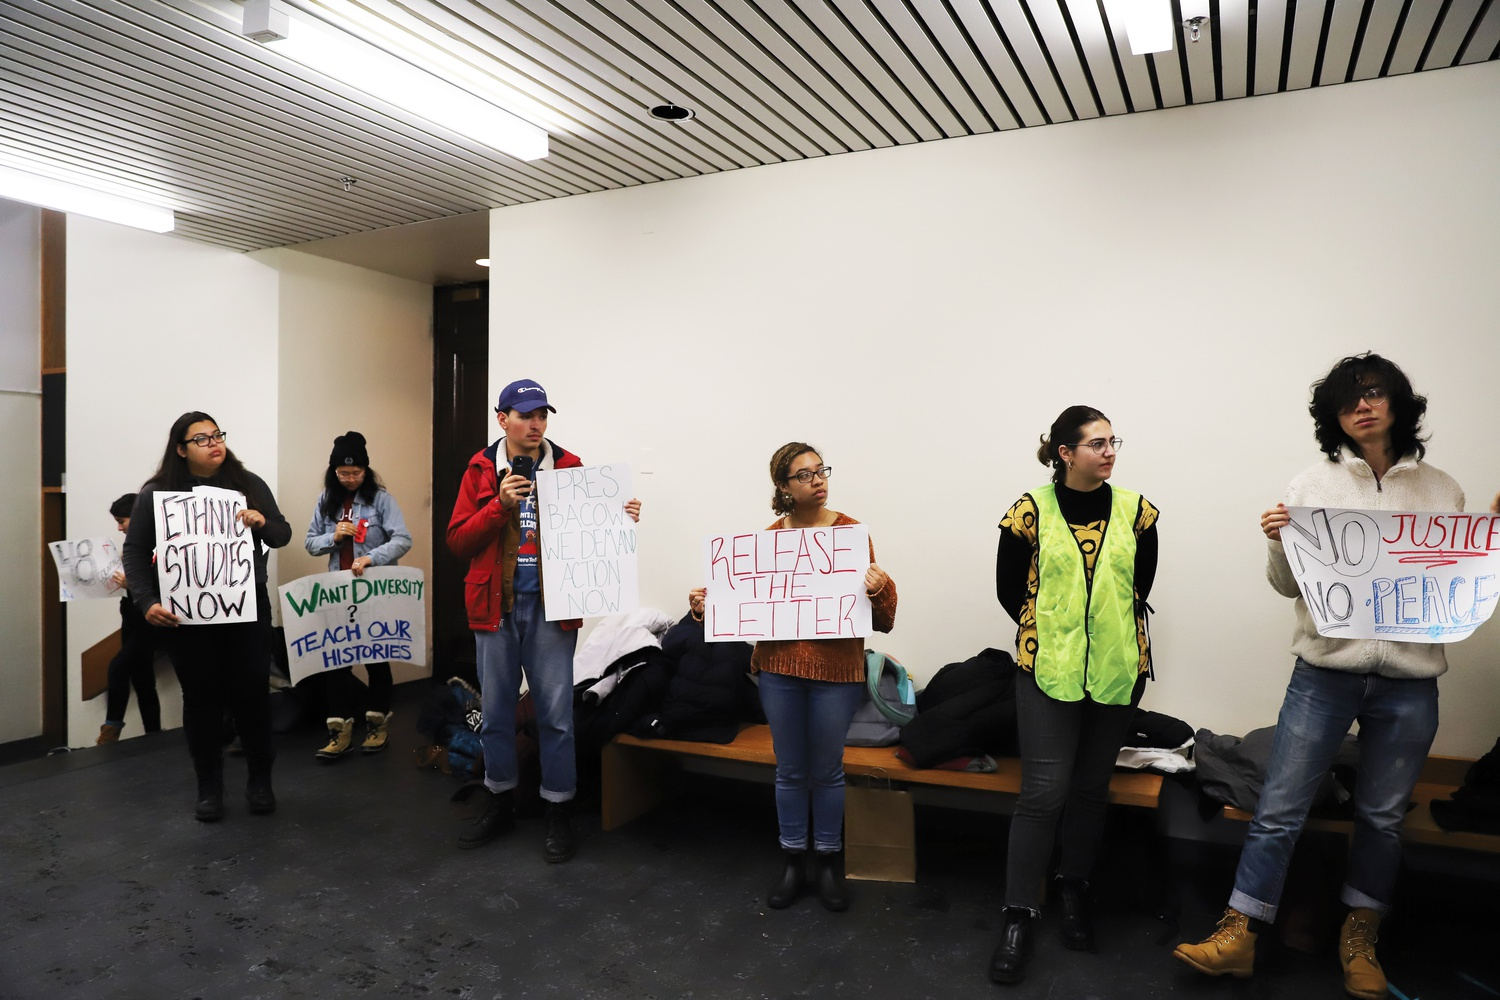 Protestors lined the walls of Emerson Hall outside of a December faculty meeting after professor Lorgia García Peña was denied tenure.